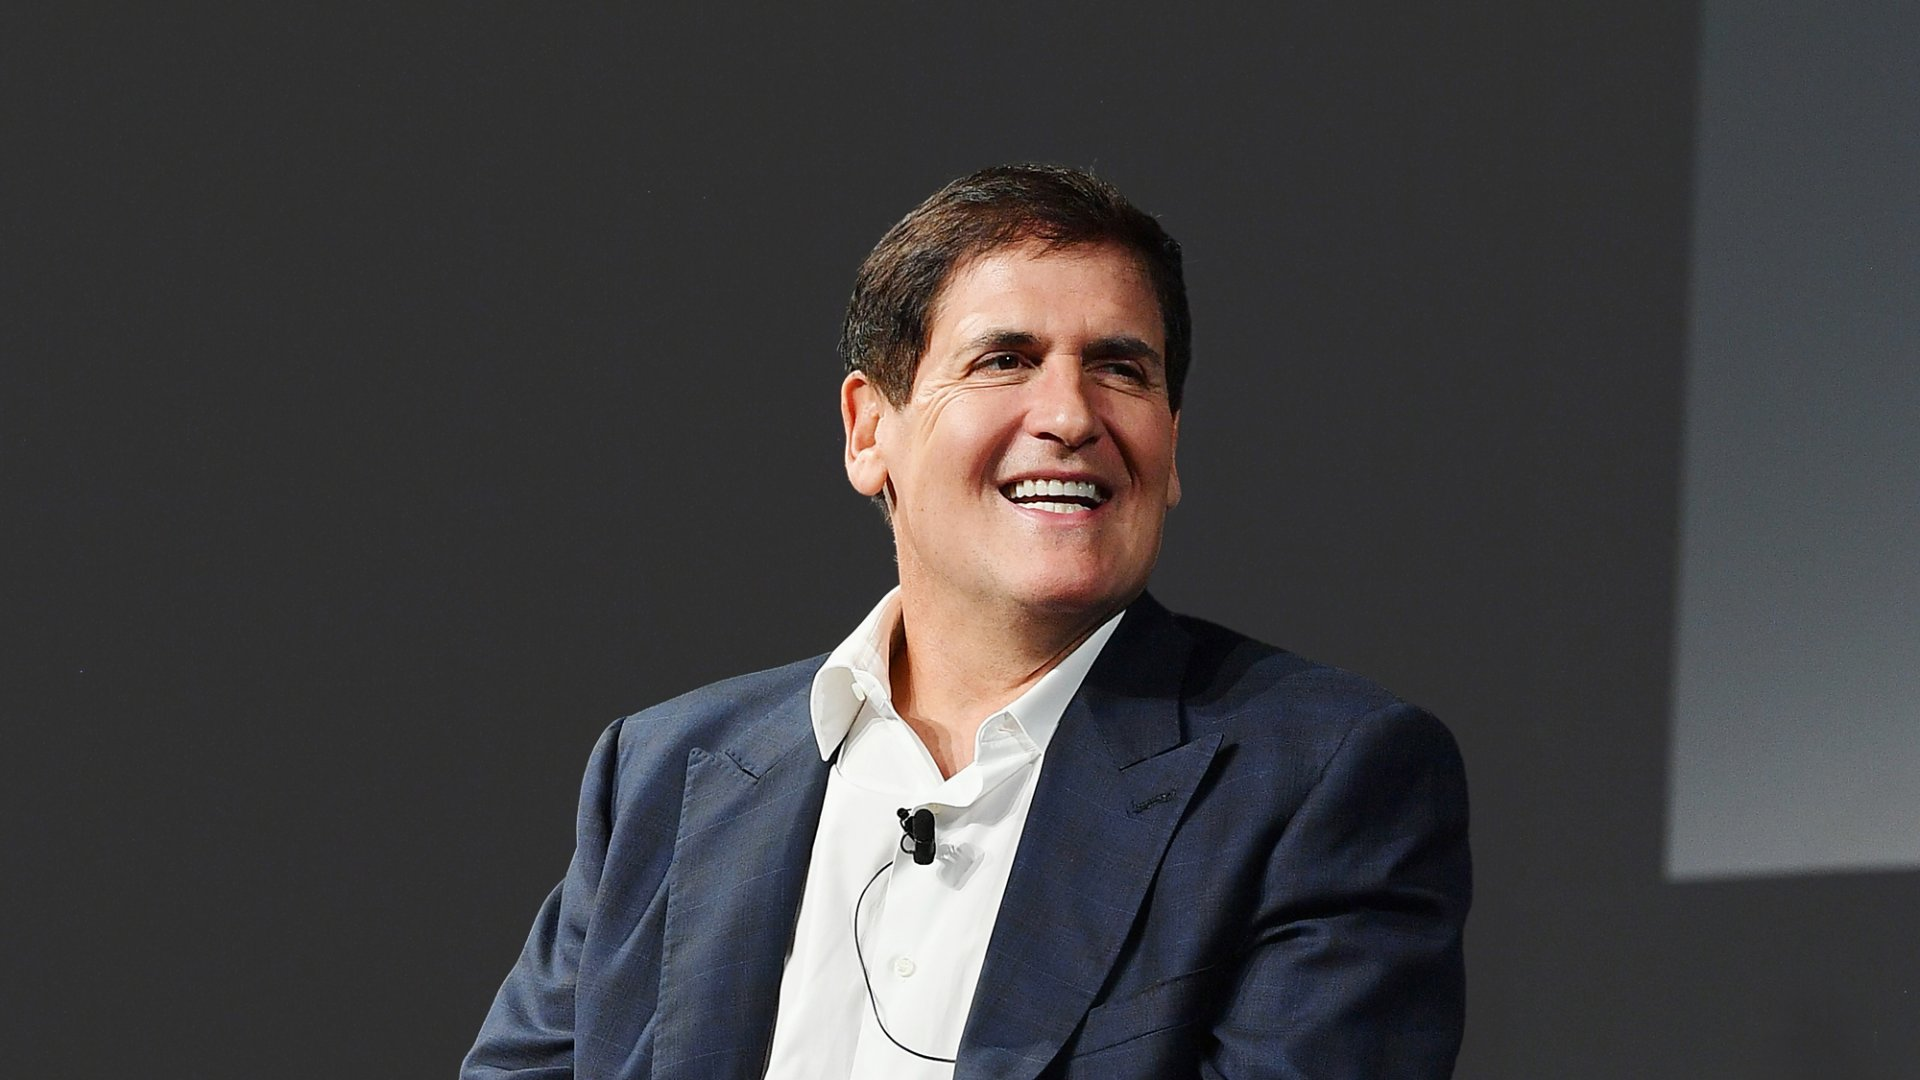 Watch: Mark Cuban on Where Small Business Owners Go From Here